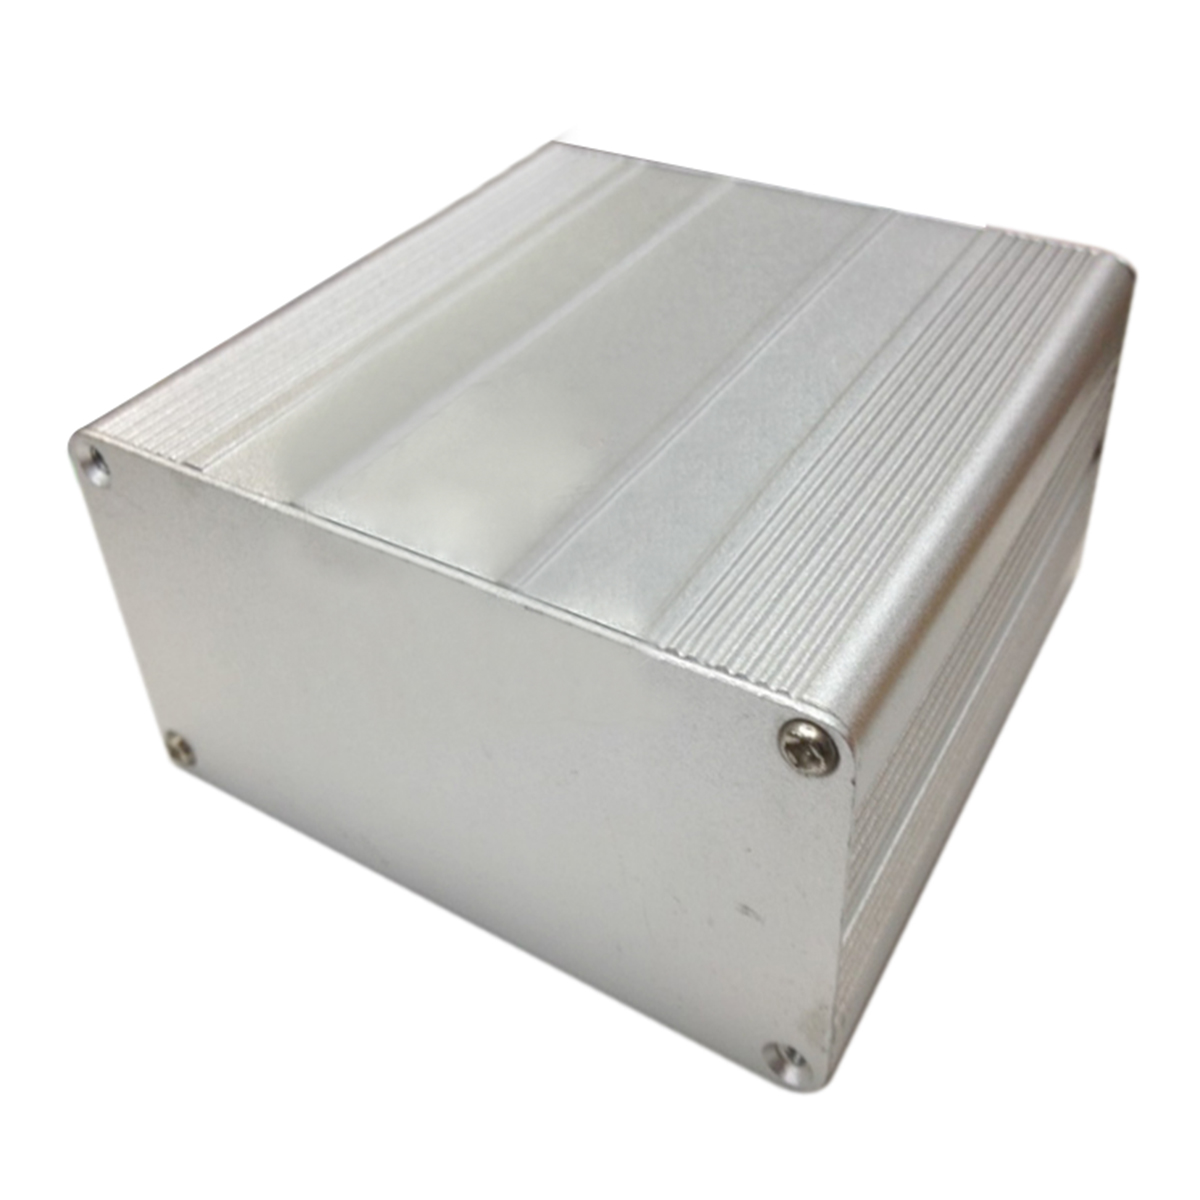 1pc Aluminum Electronic Project Enclosure Case DIY PCB Instrument Box 100x100x50mm with Screws e cap aluminum 16v 22 2200uf electrolytic capacitors pack for diy project white 9 x 10 pcs